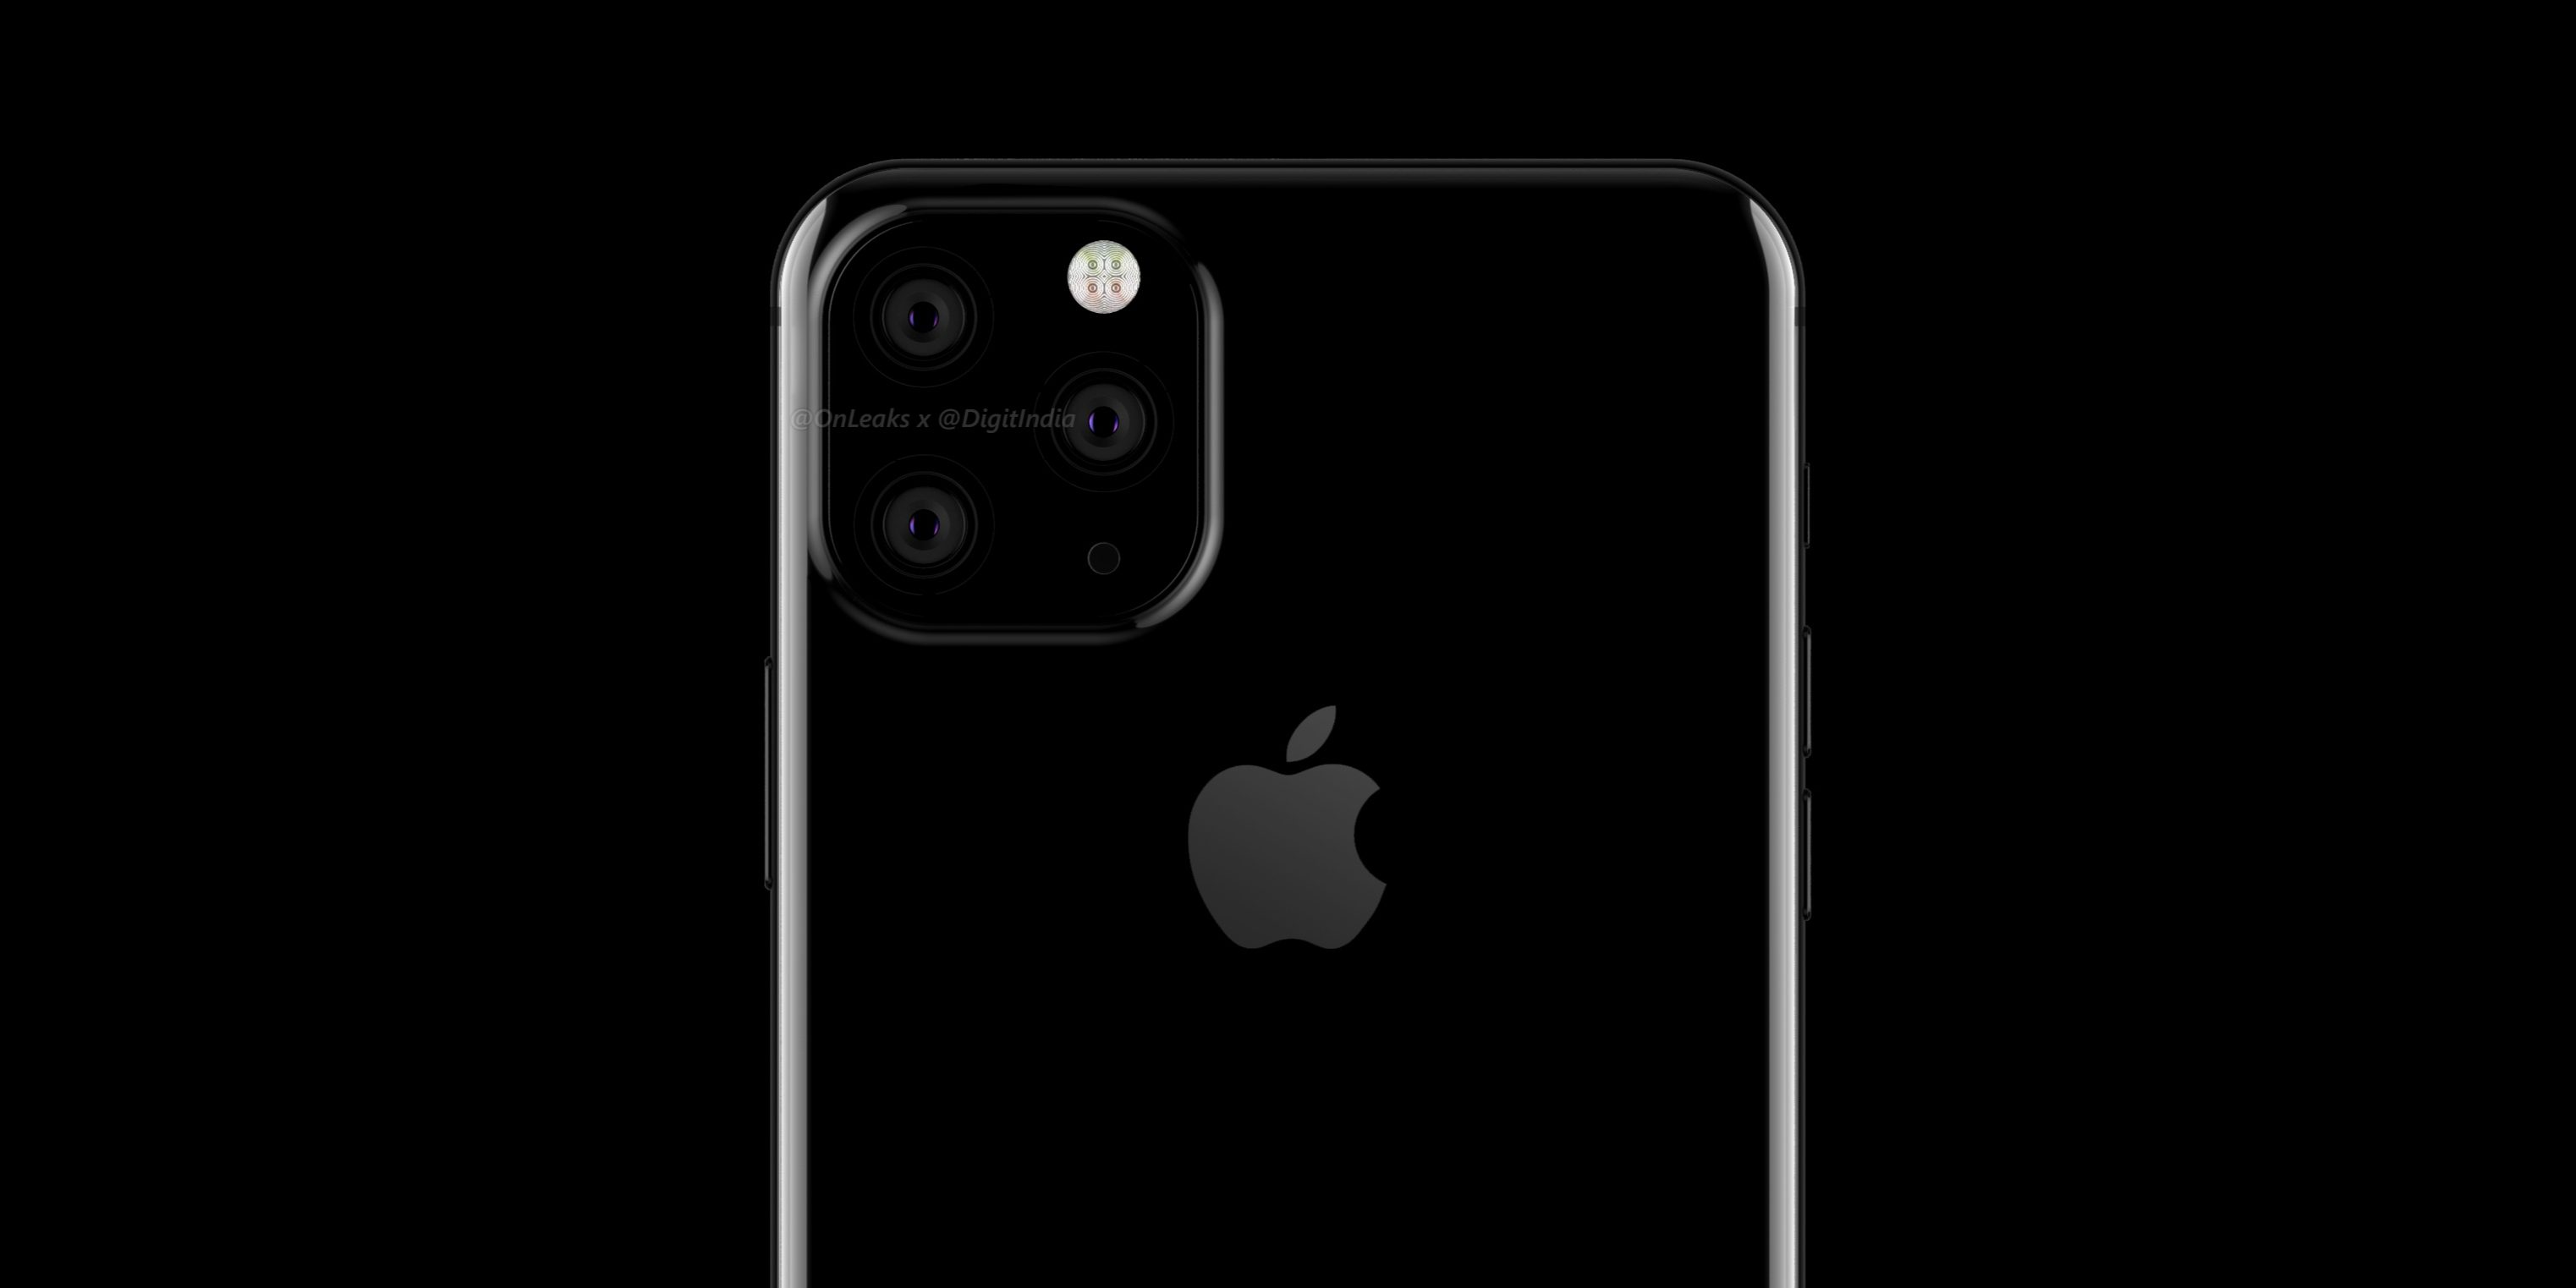 Three cameras in next iPhone, photos leaked on Twitter